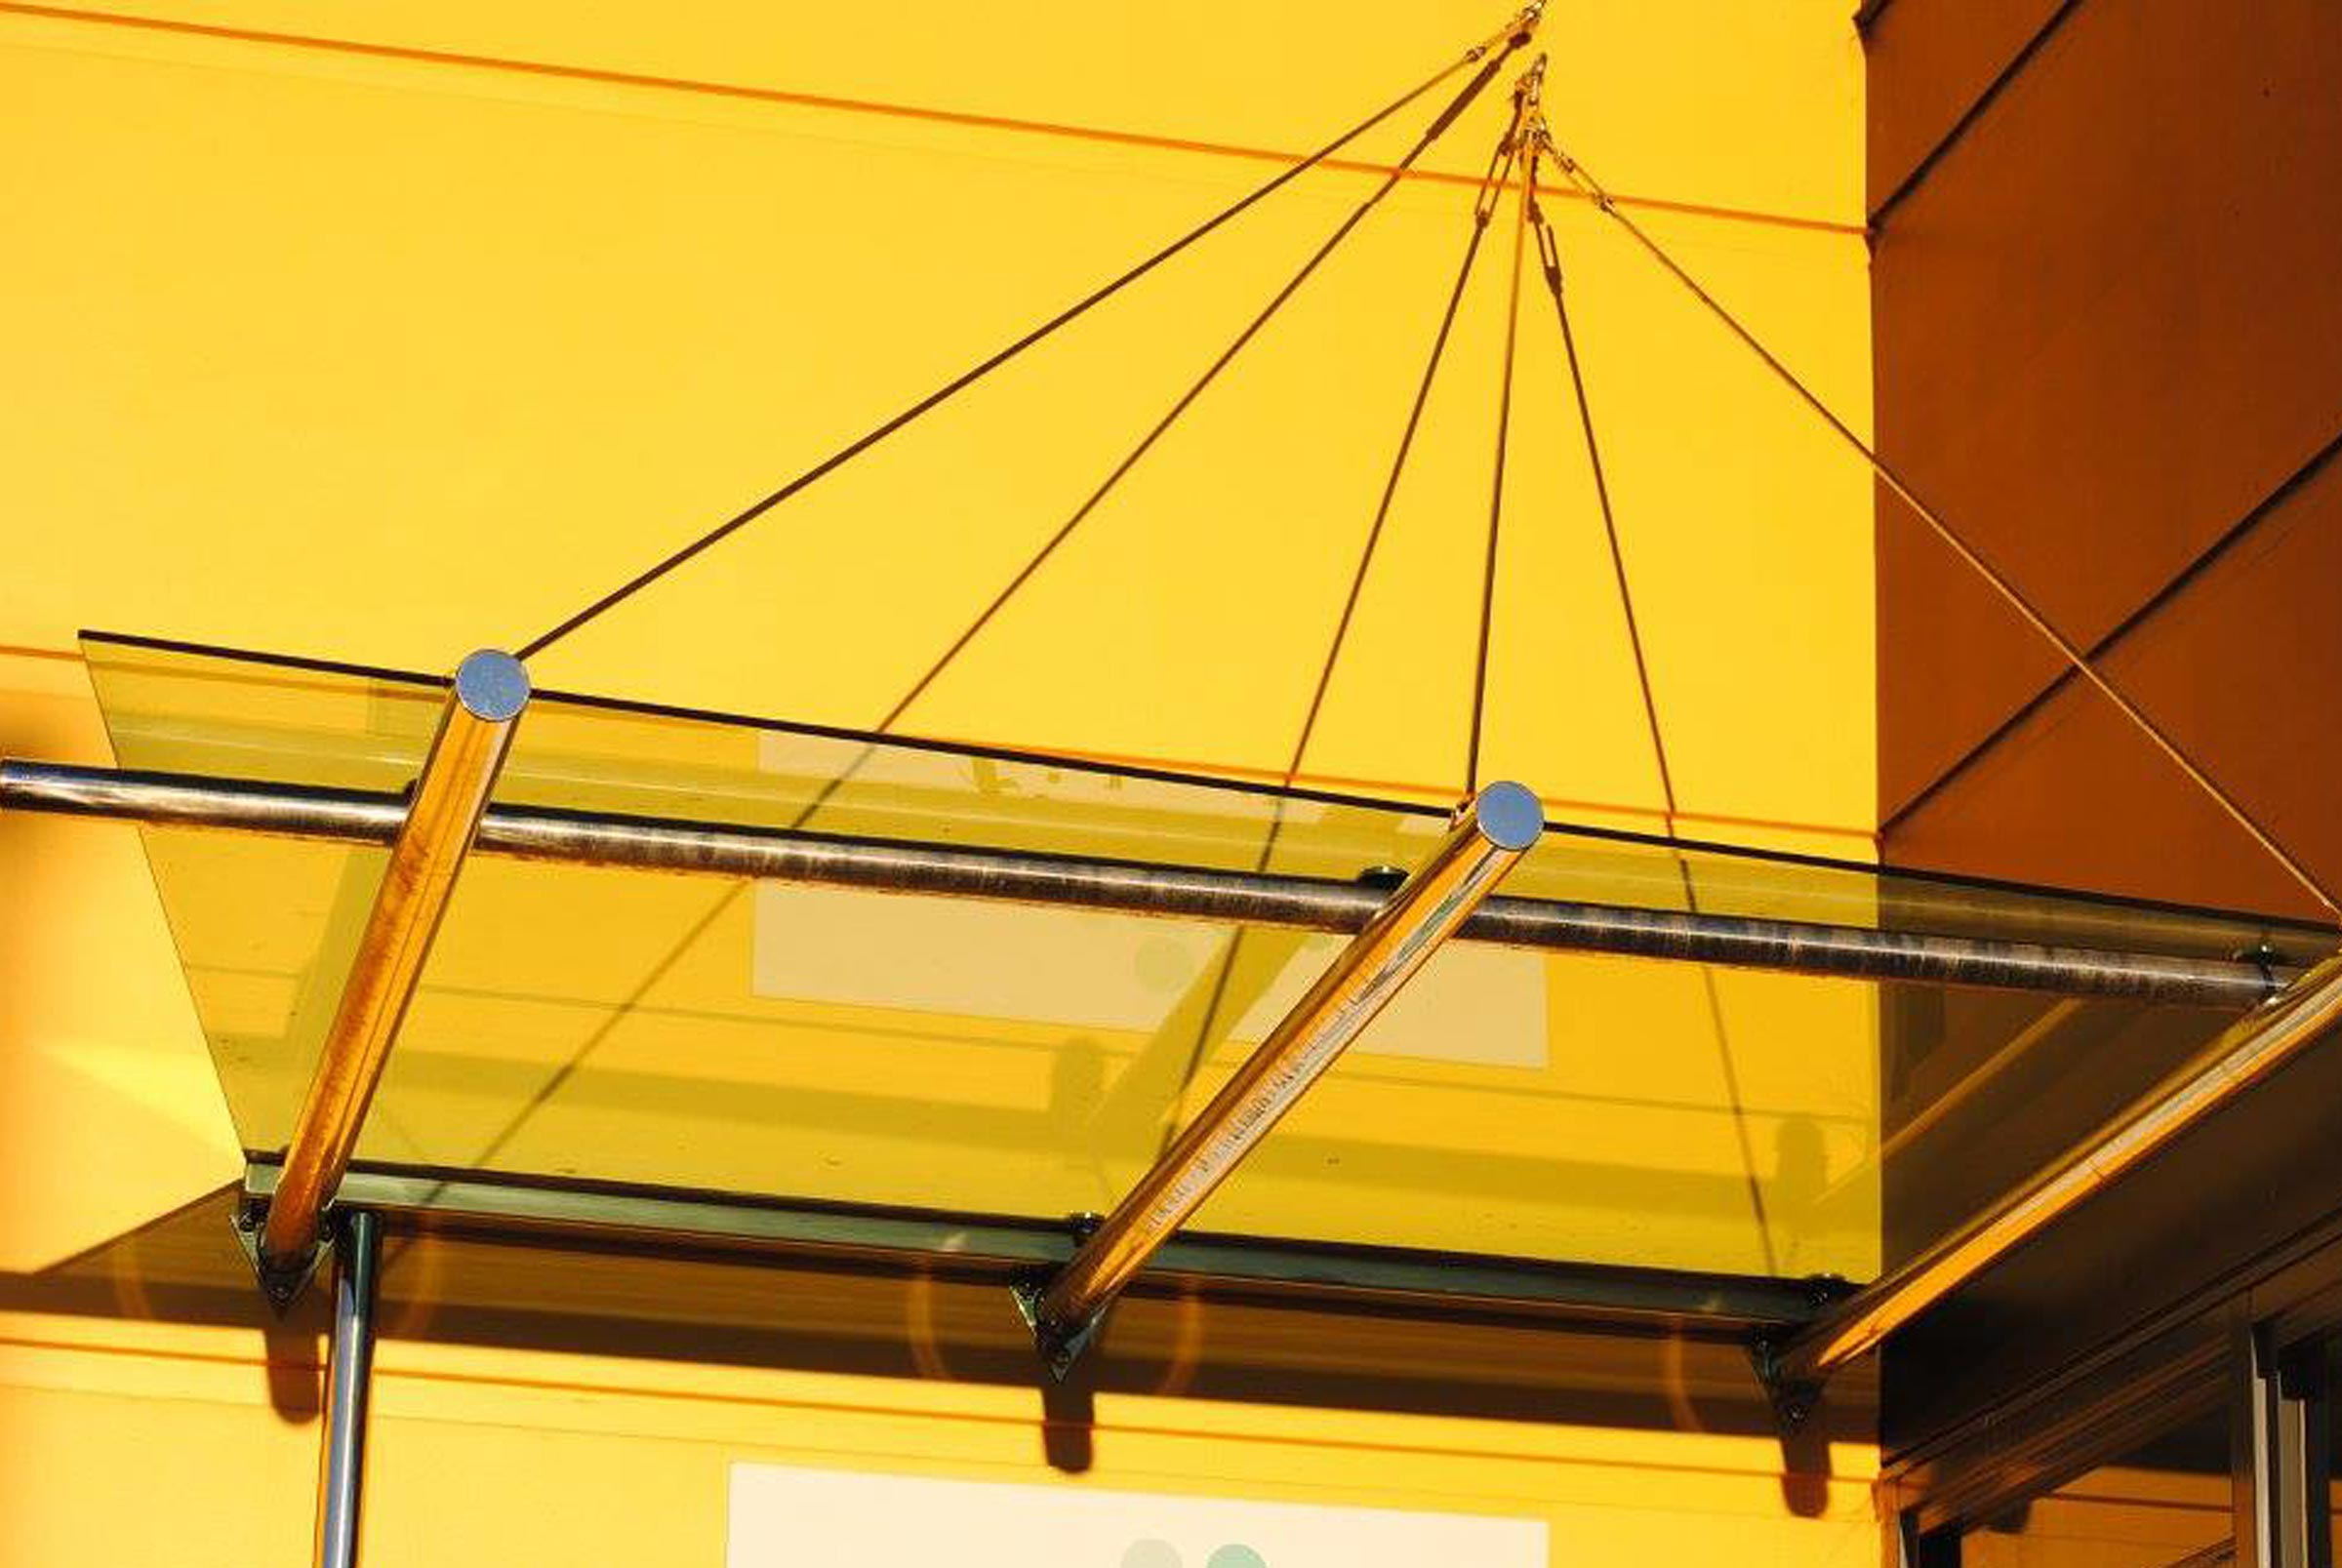 yellow stainless awning